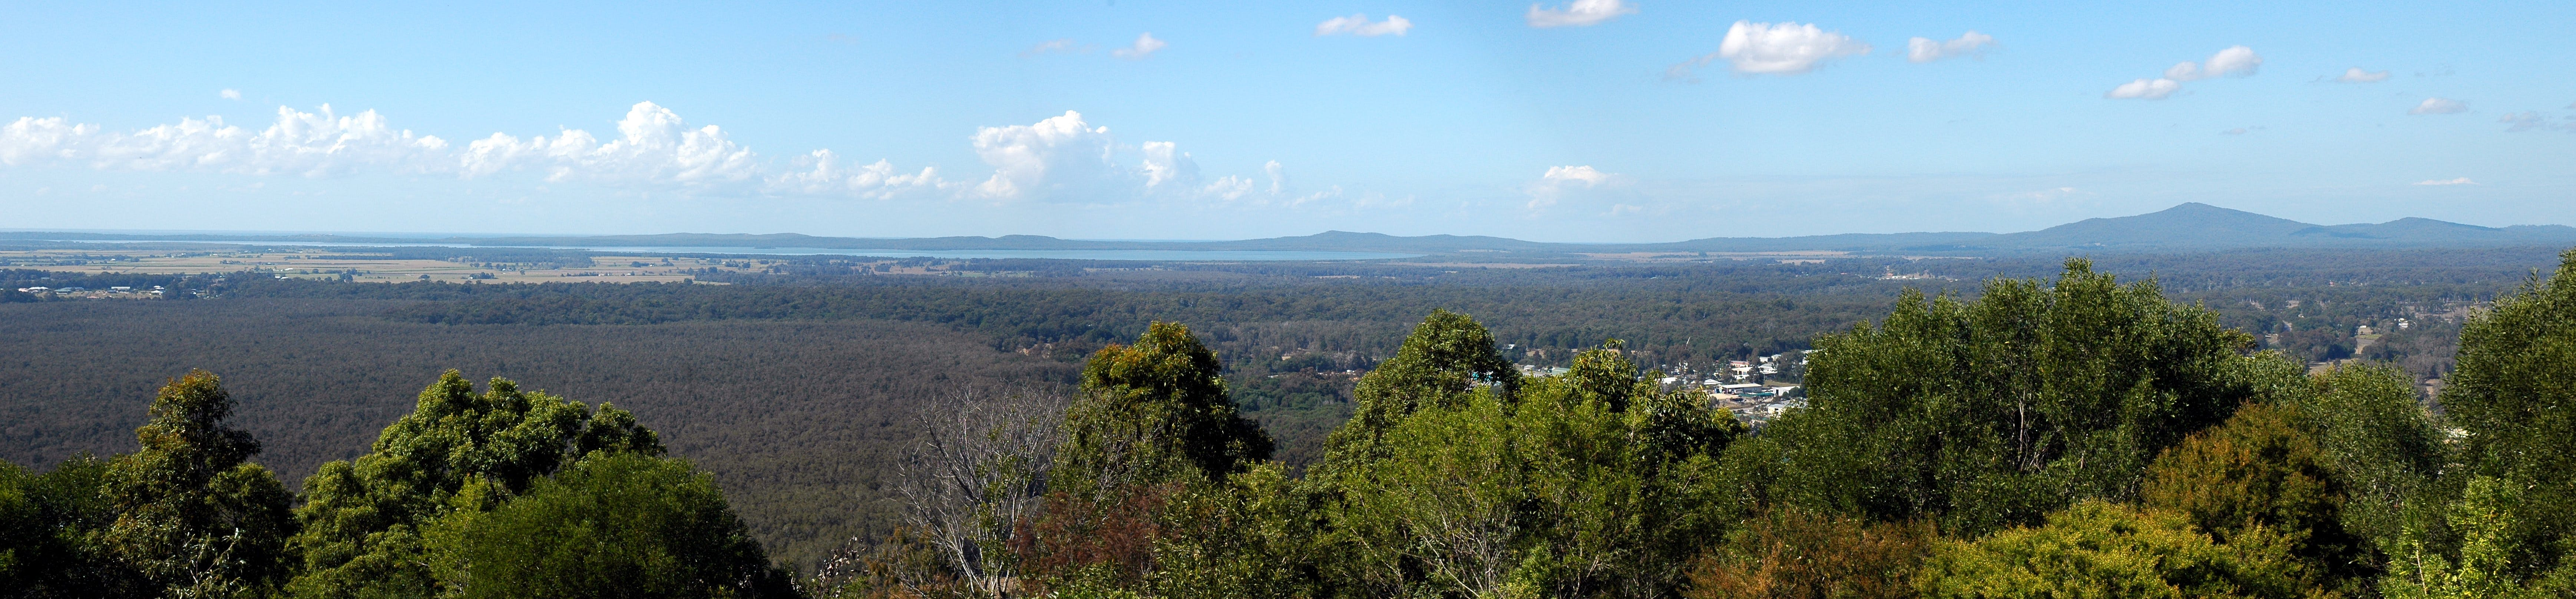 Maclean Lookout - Tourism Cairns